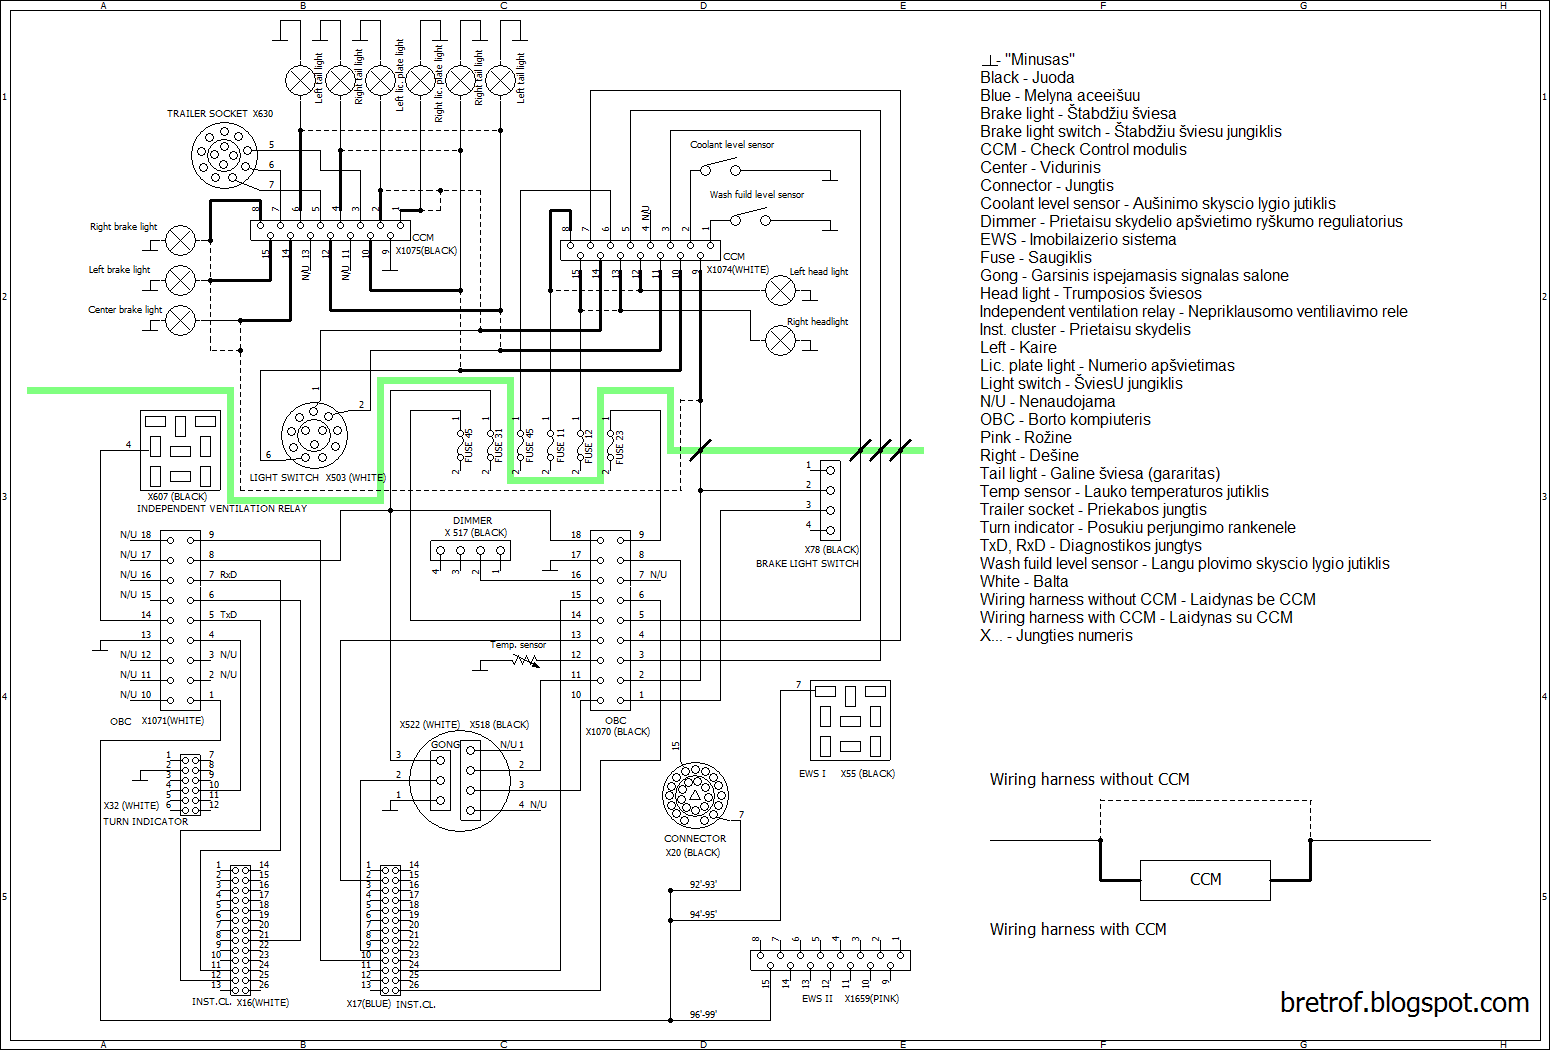 evo 2050 wiring diagram